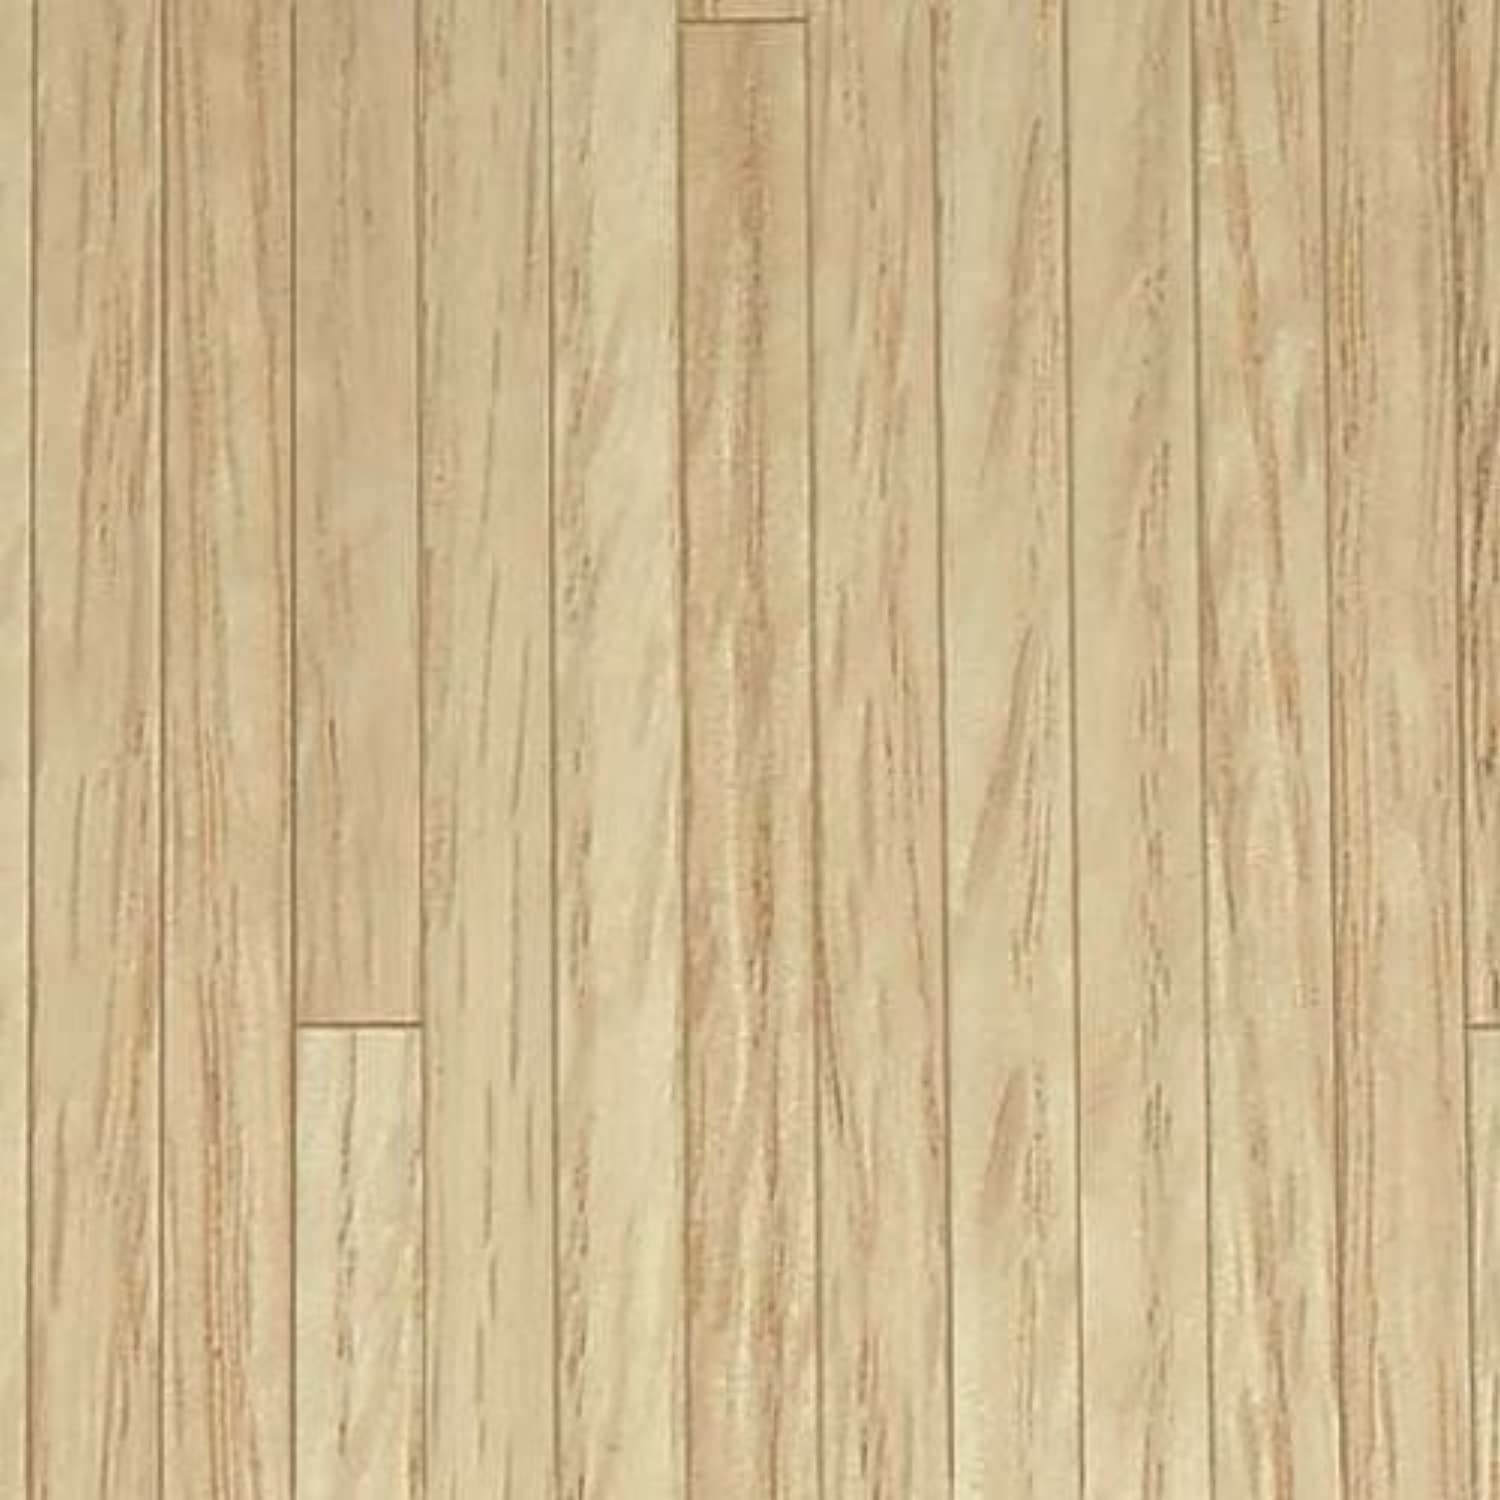 Dollhouse Miniature Red Oak Flooring by Houseworks by Houseworks, Ltd.